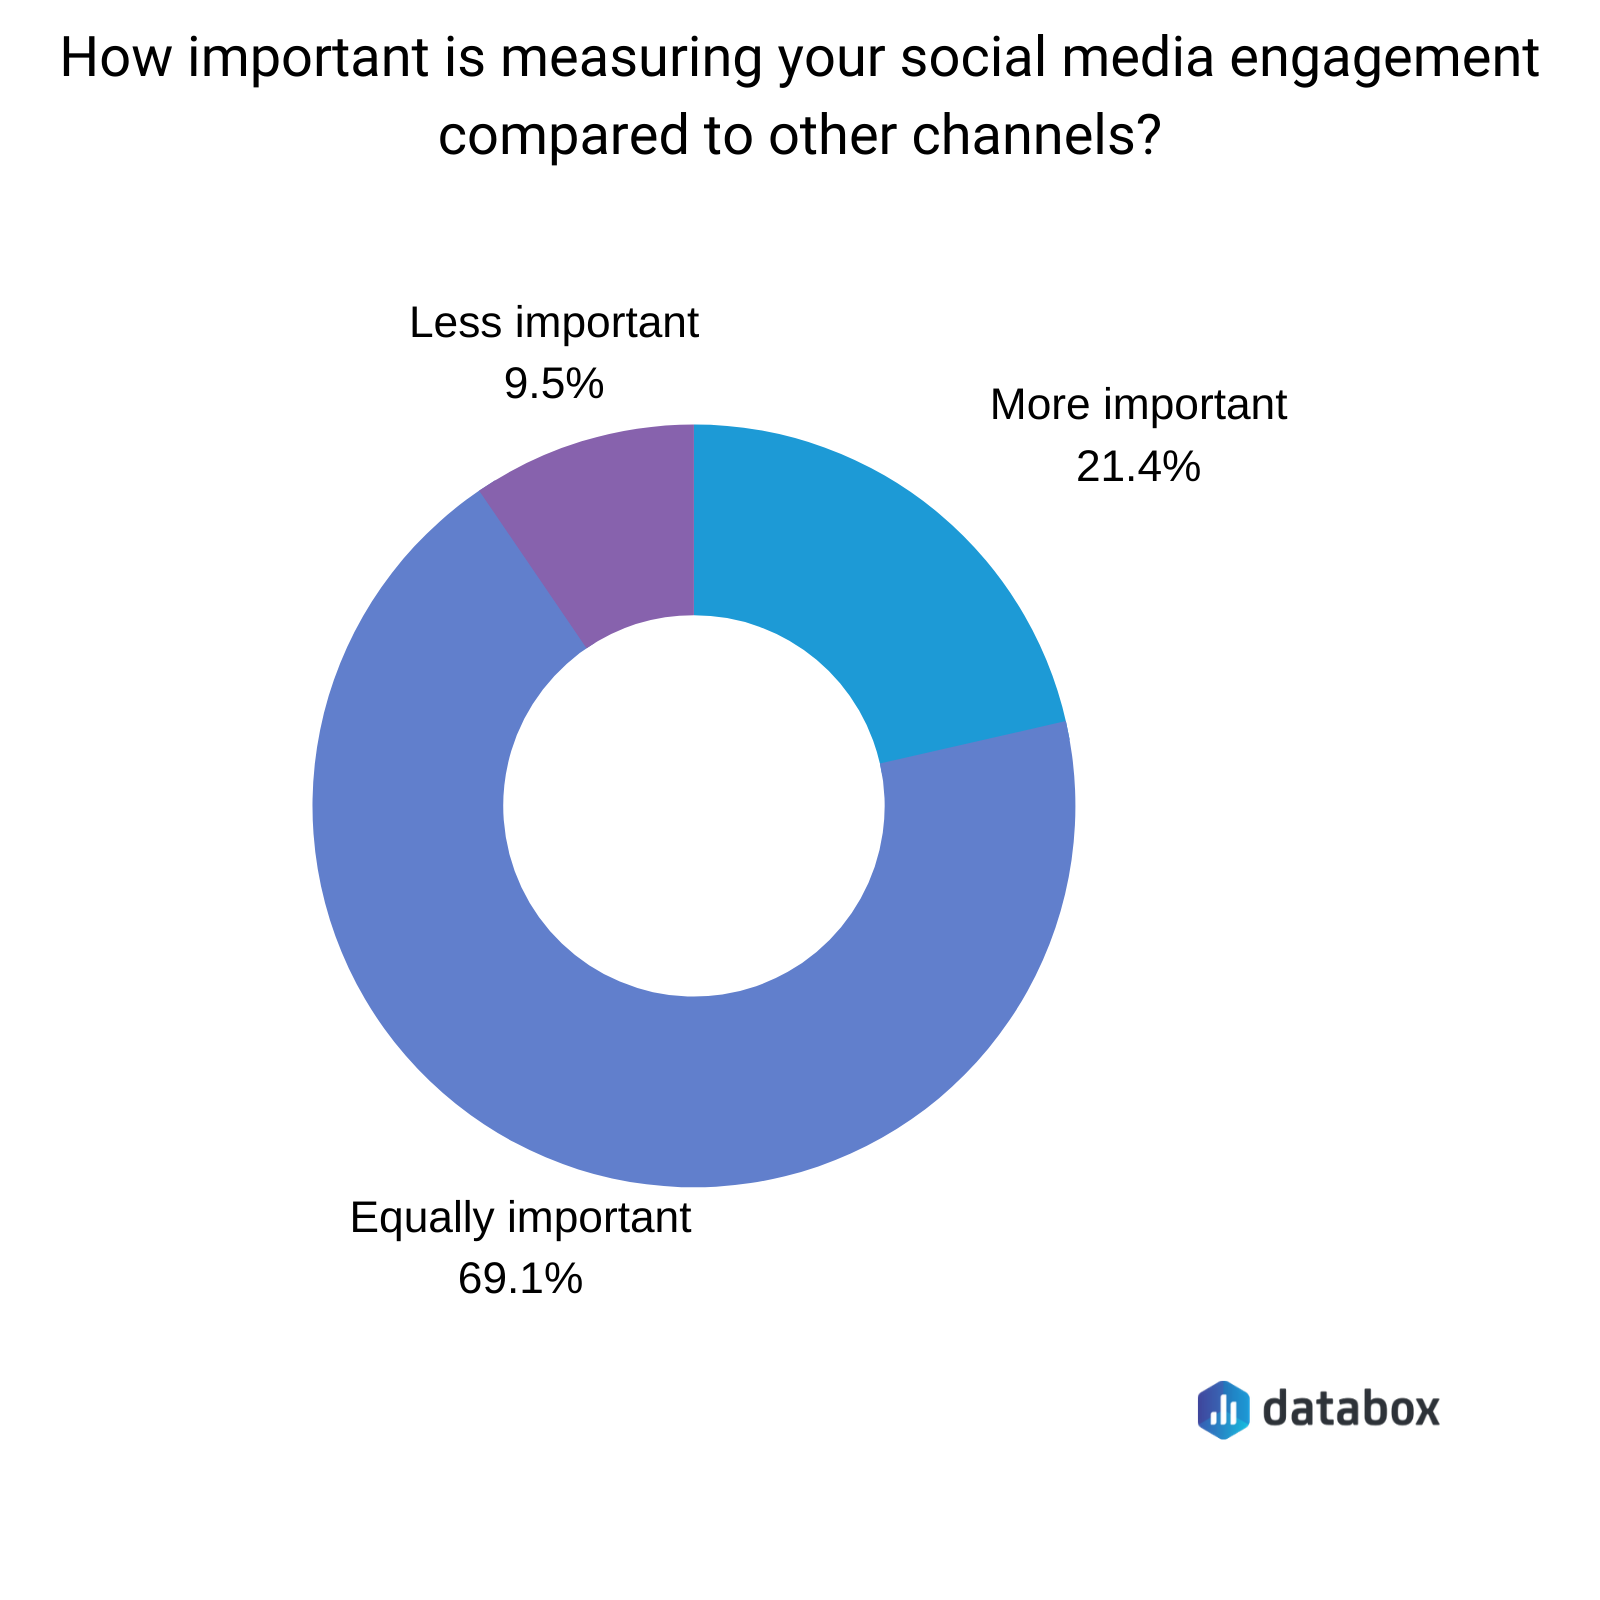 How important is measuring your social media engagement compared to other channels?